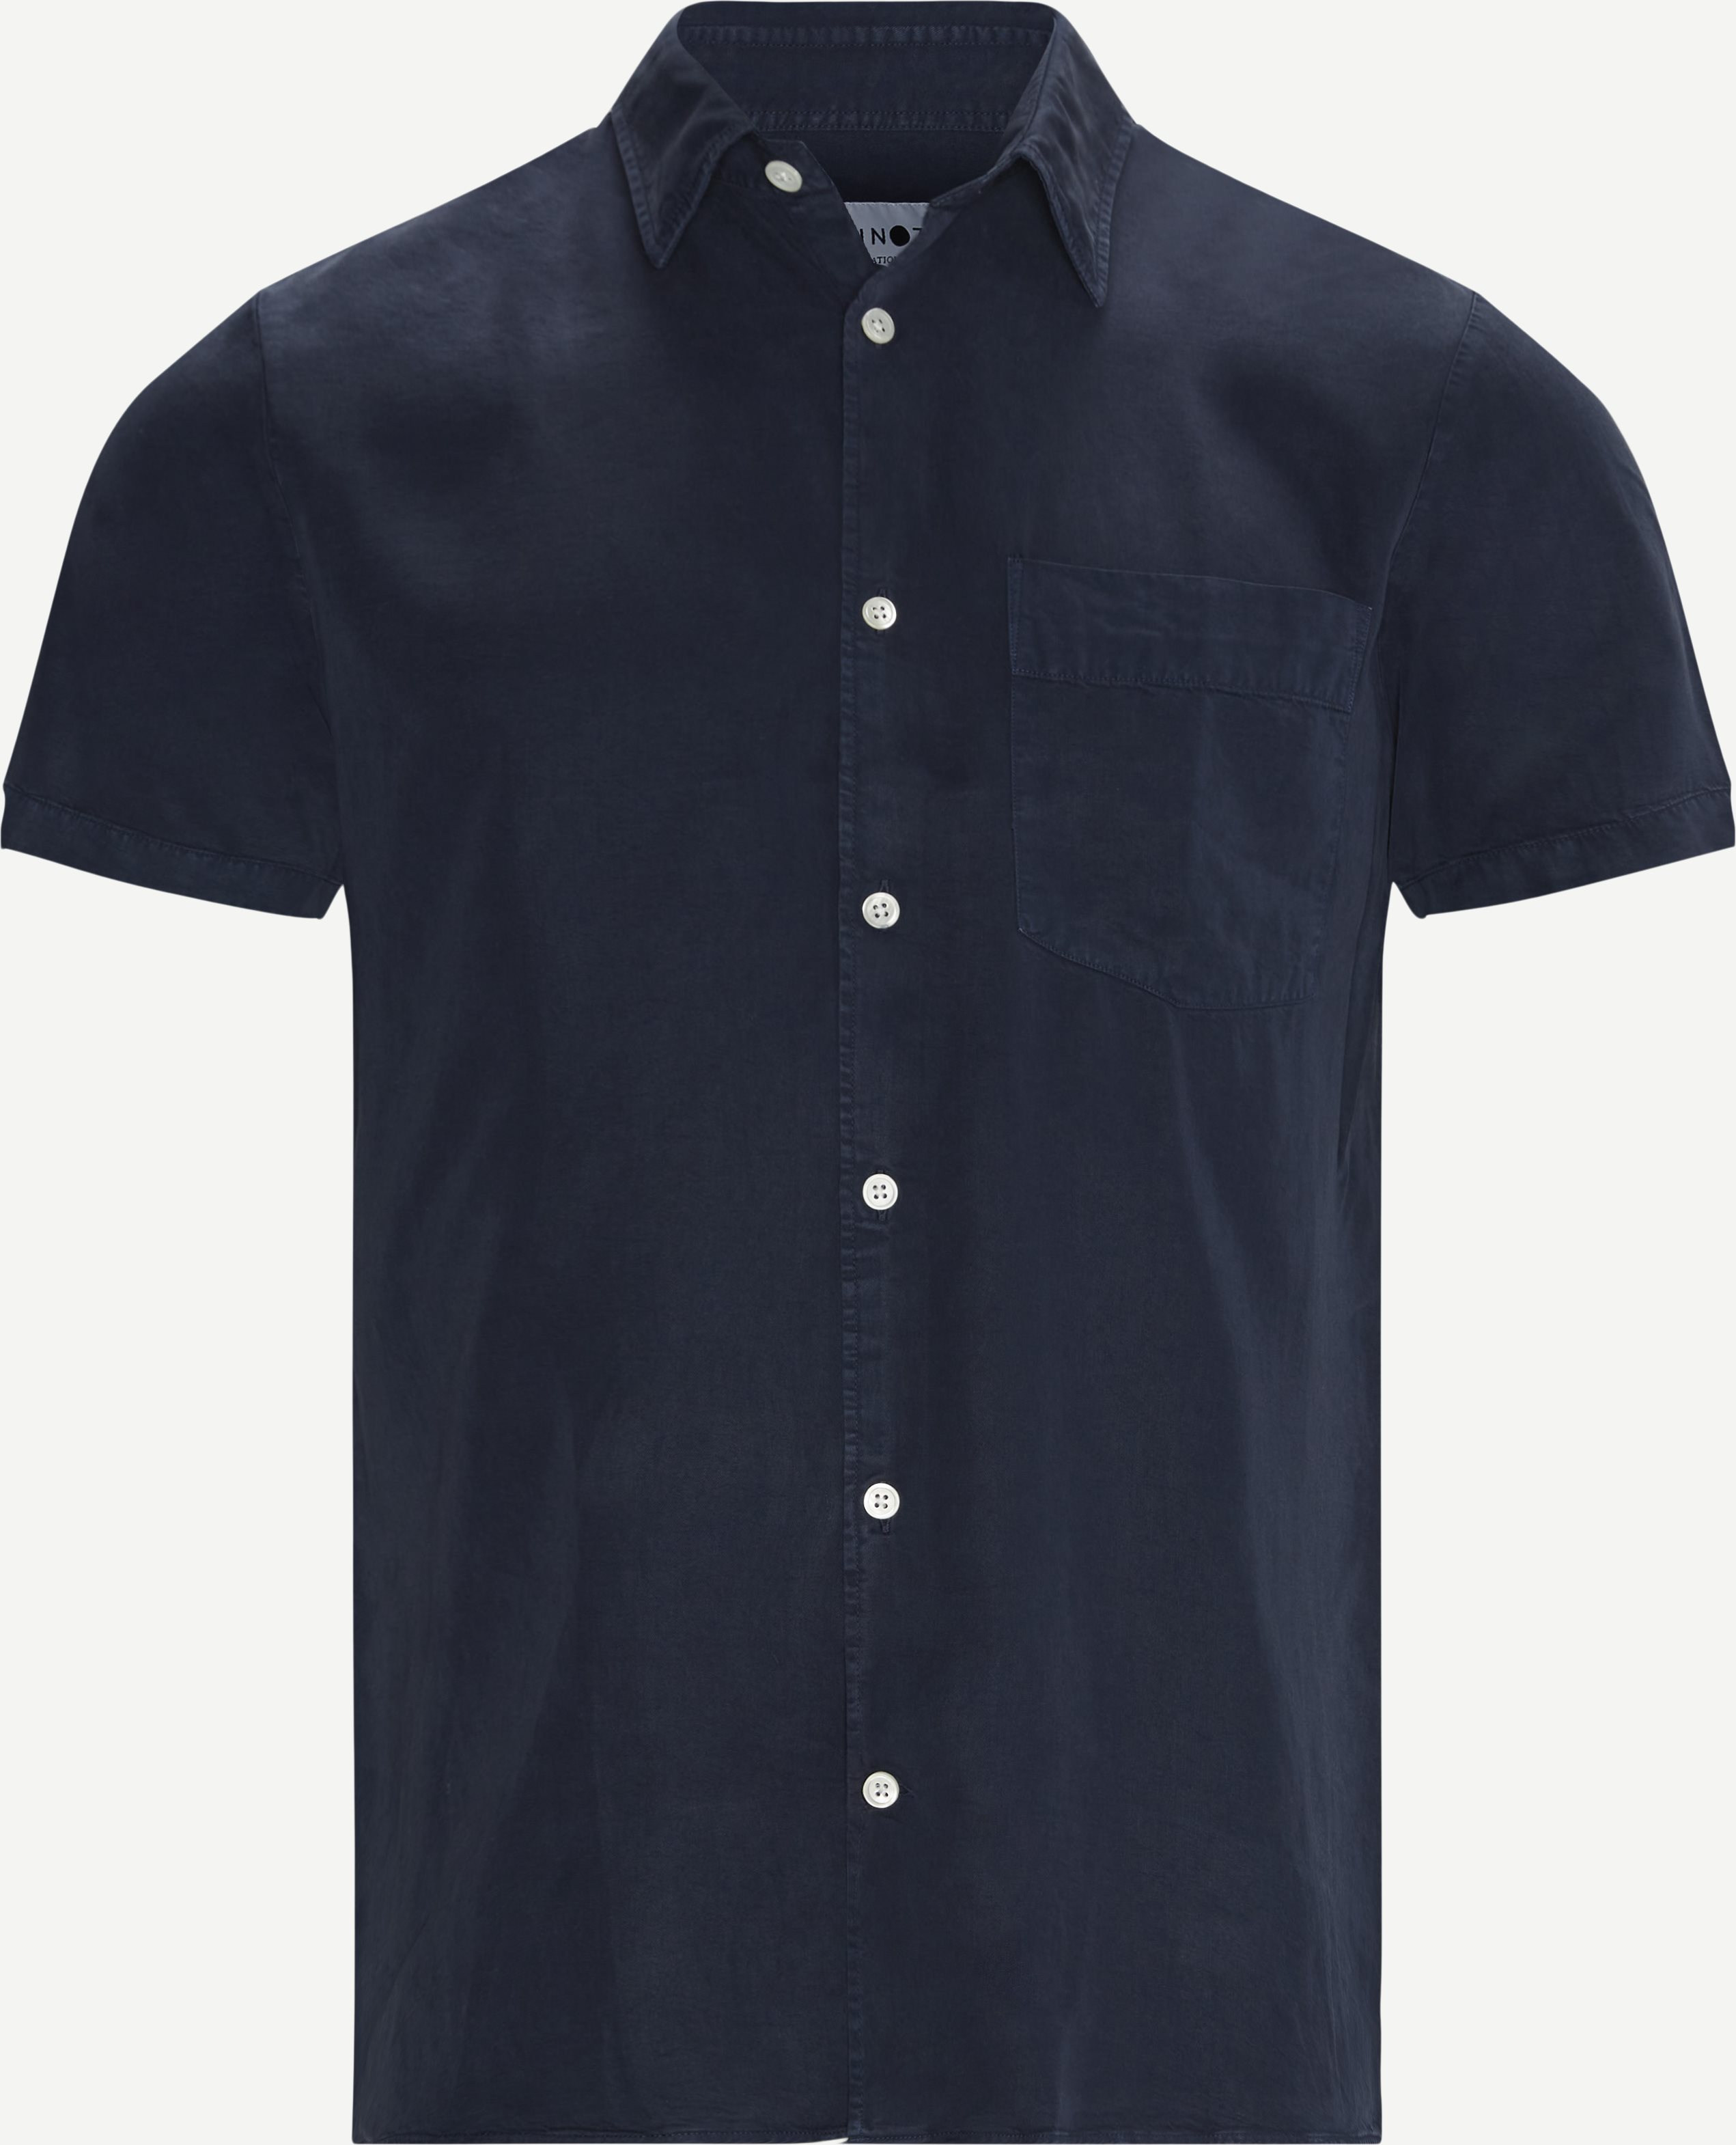 Errico K/Æ Skjorte - Short-sleeved shirts - Regular - Blue